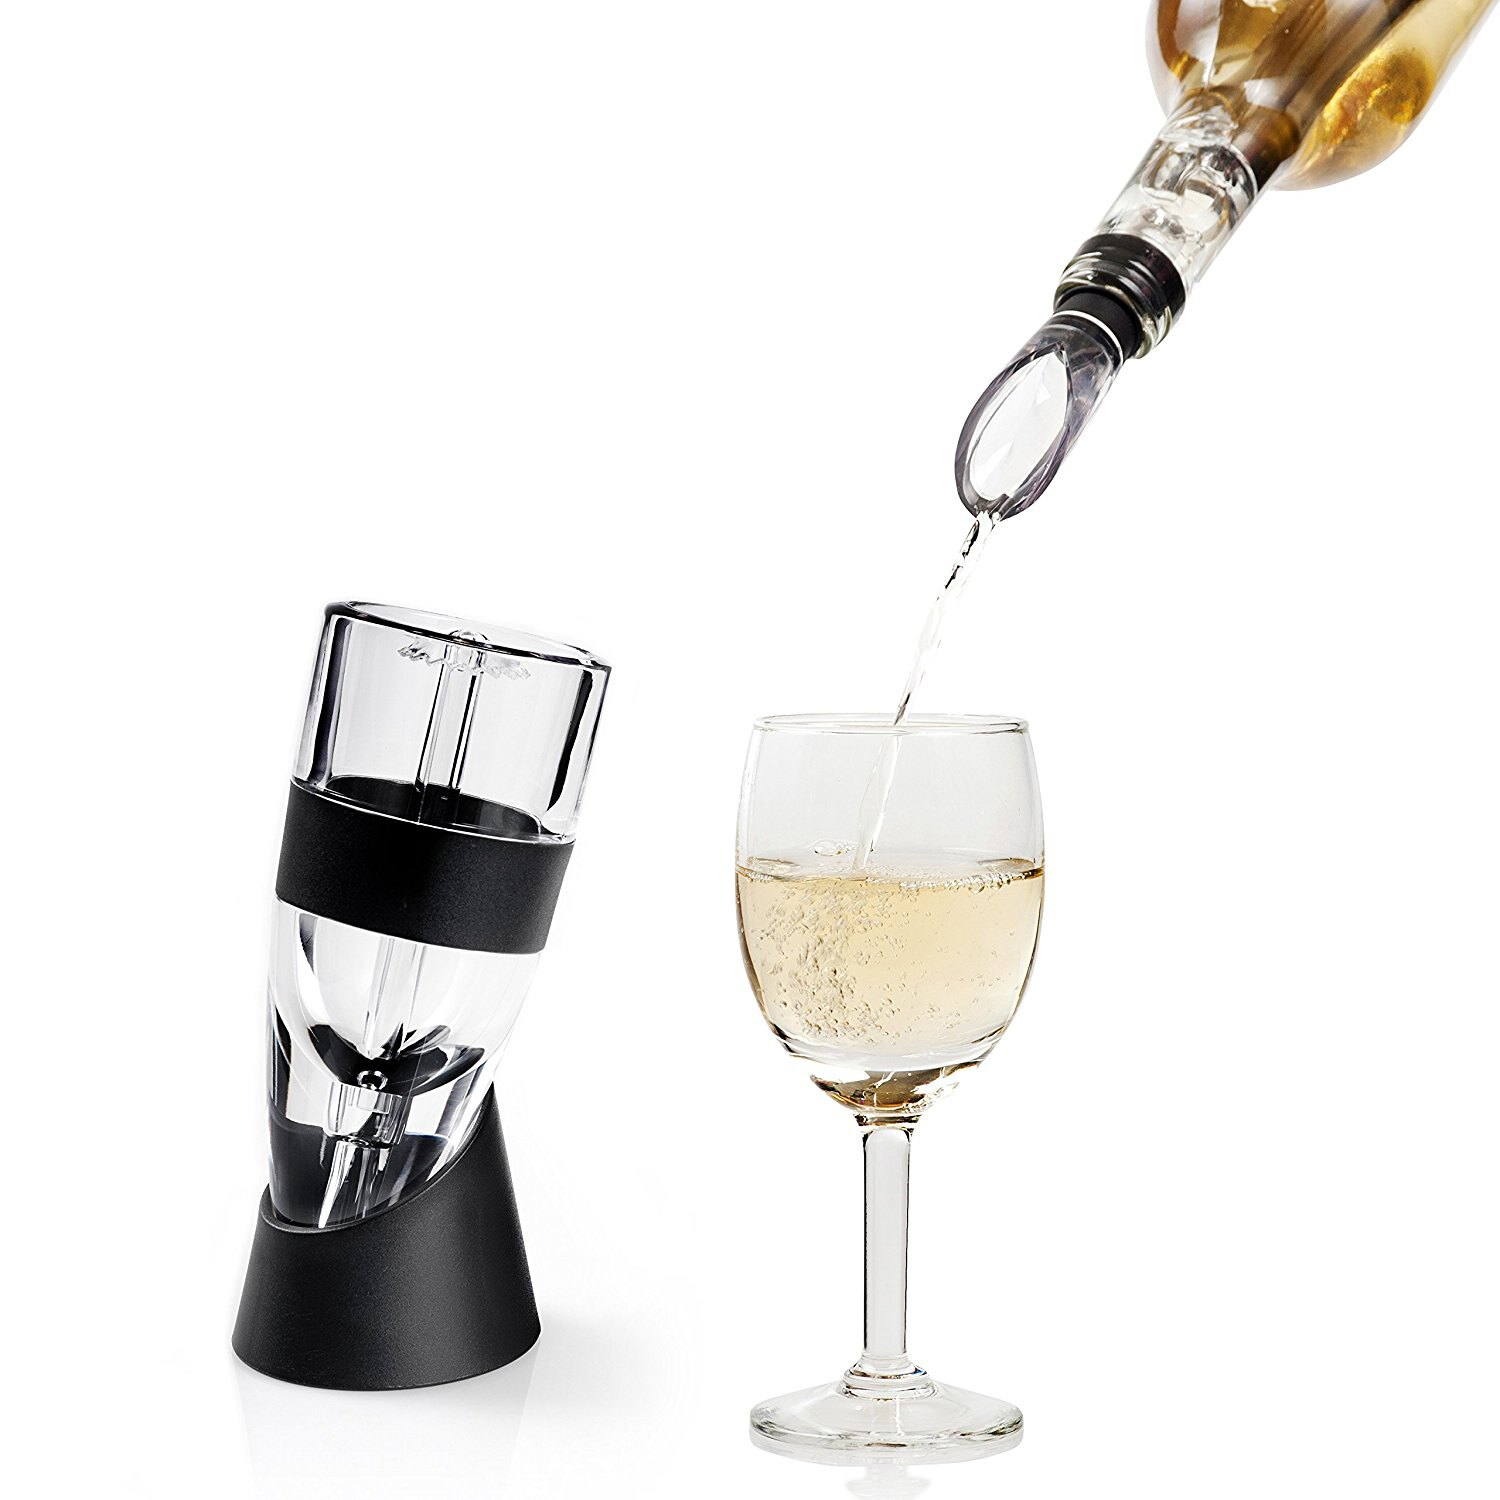 Decanter Wine Glas Secura Premium Wine Aerator Decanter With Wine Pouring Spout Chilling Stick